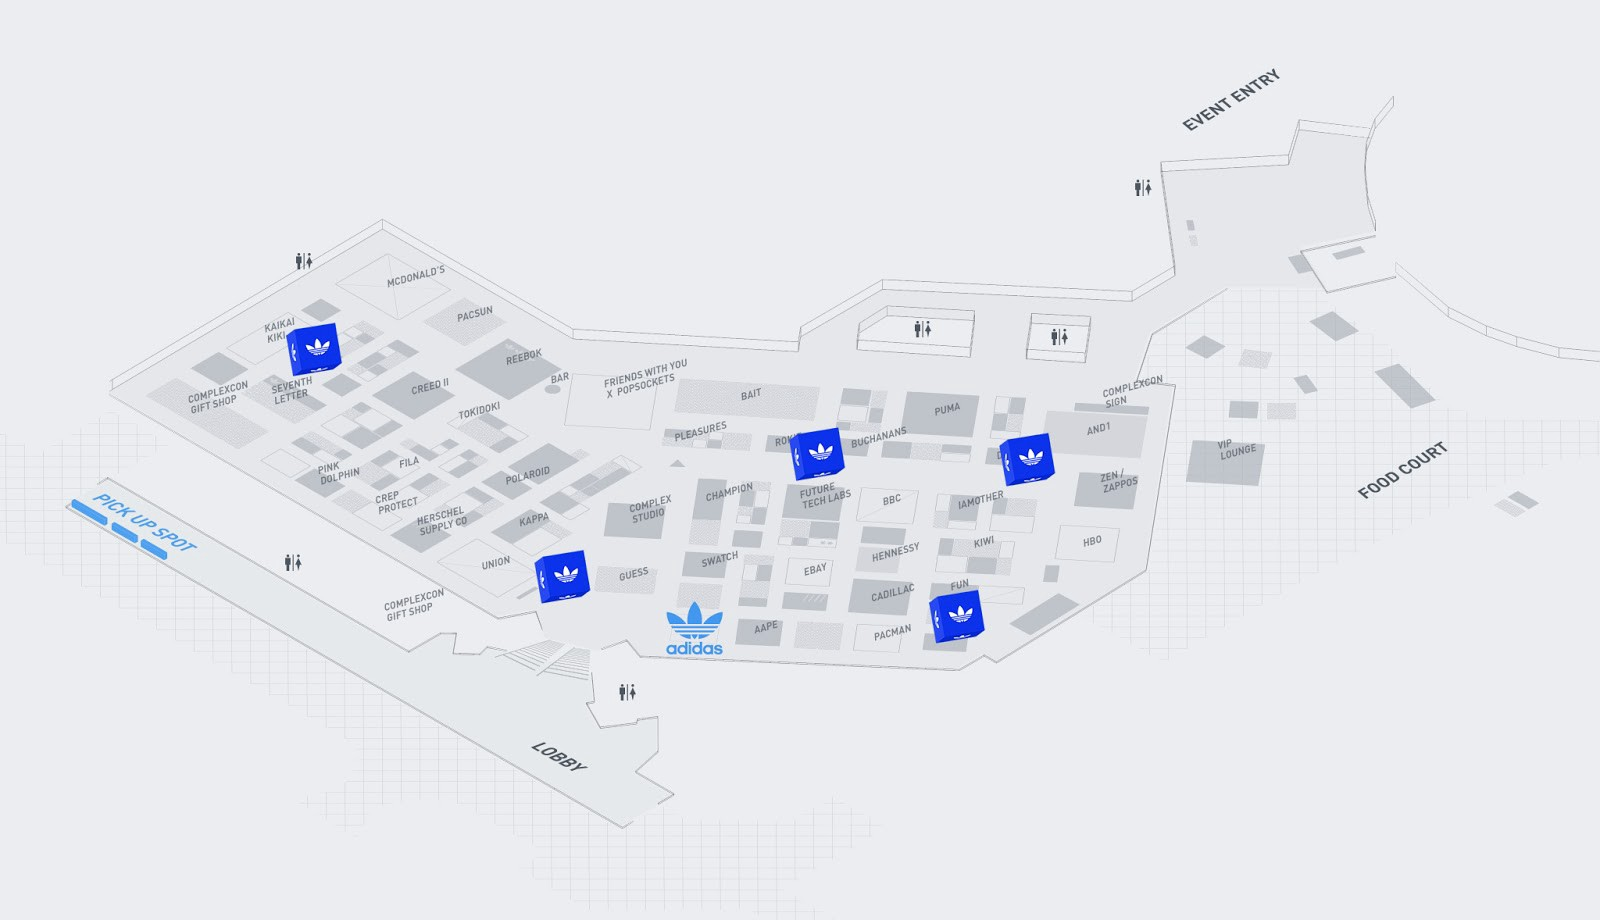 low priced 933e2 9fa74 When a user made it to the waypoint, they would find a large, adidas-branded  cube hanging from the ceiling. Proximity beacons around this area activated  the ...